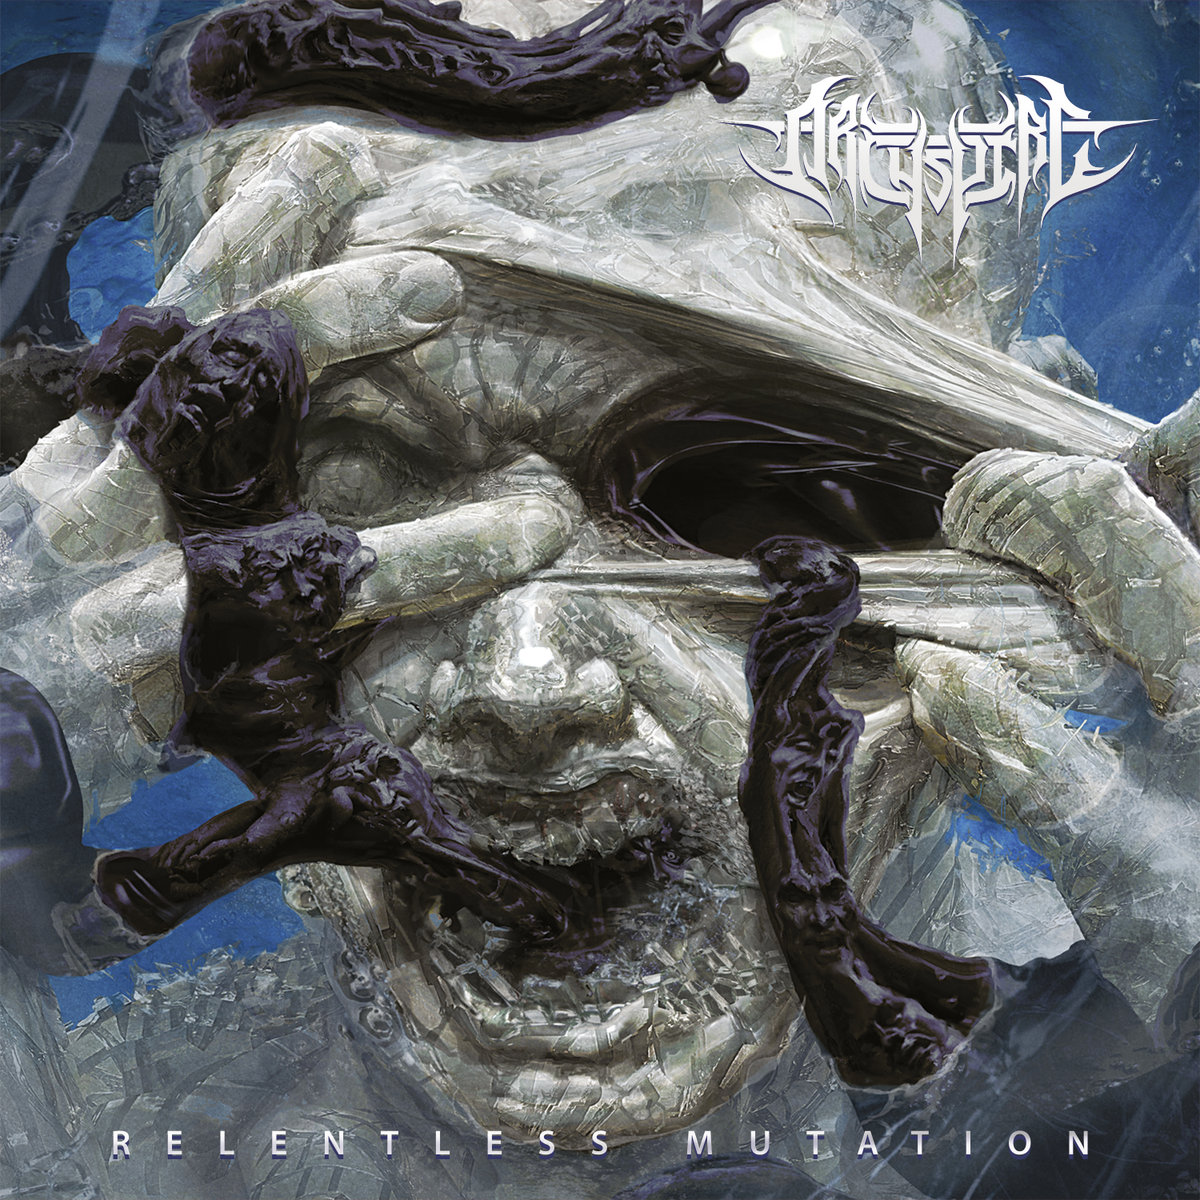 Archspire – Relentless Mutation Album Review